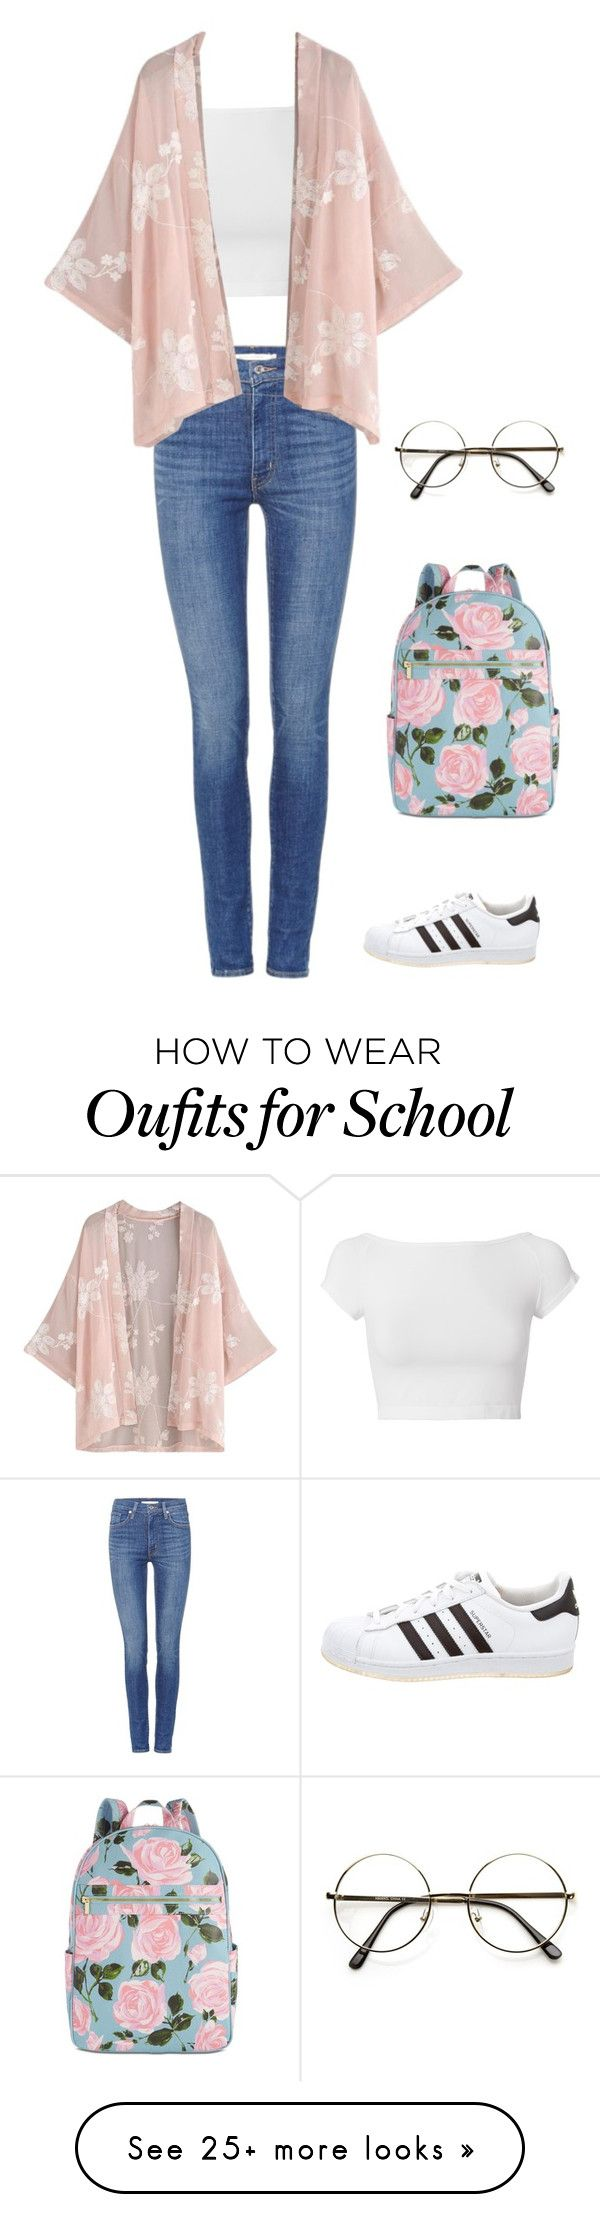 """Fall School Day"" by kayleemariem on Polyvore featuring Levi's, Helmut Lang, adidas and ban.do"